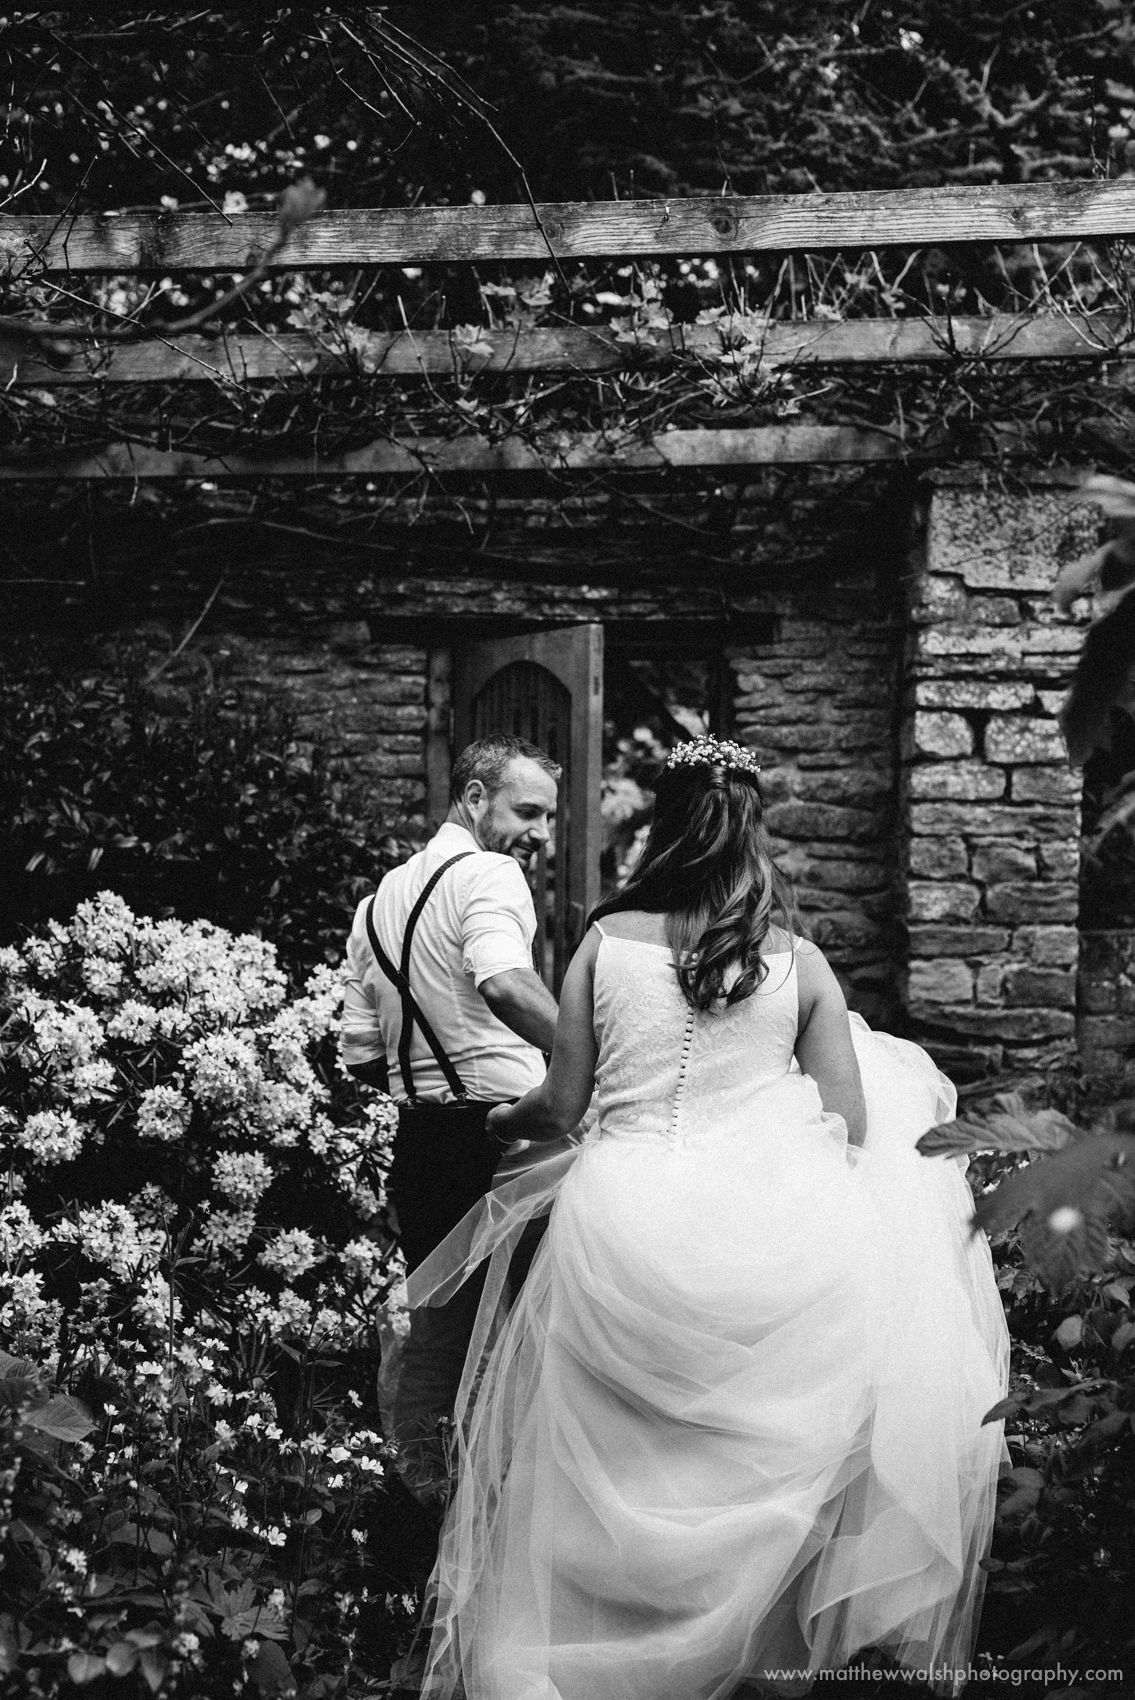 A little personal bride and groom time in the venues sunken garden